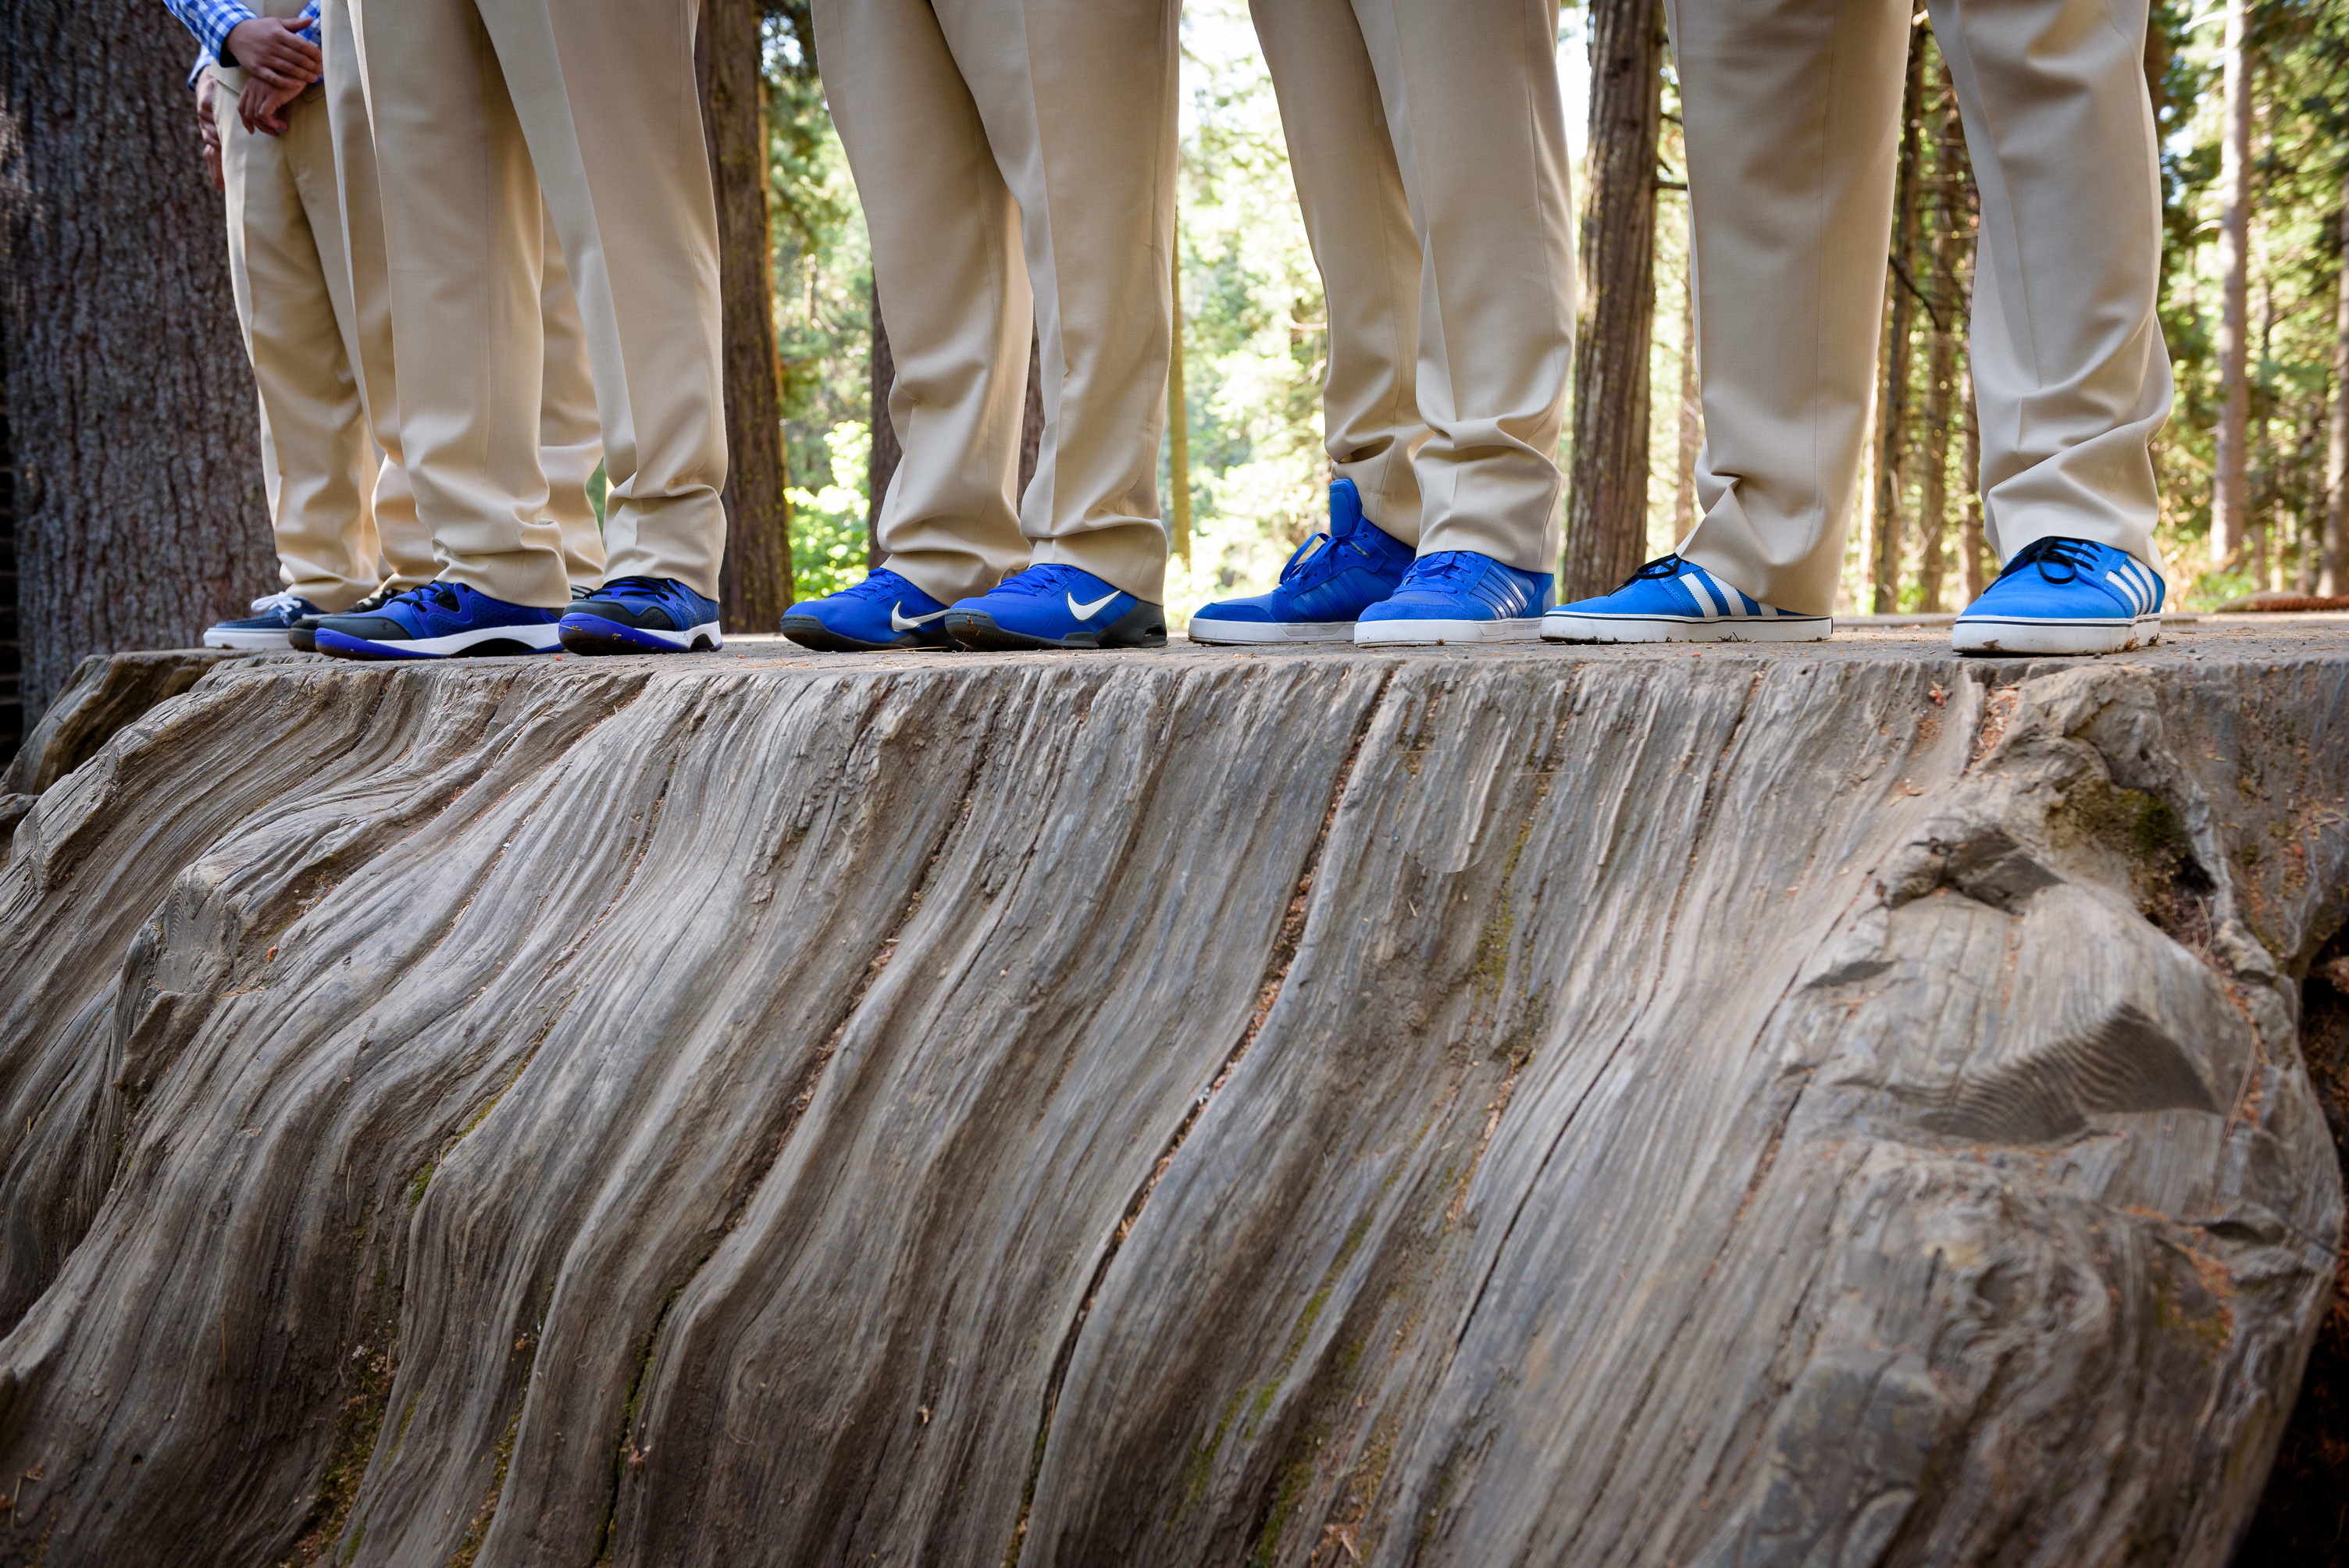 Luke's groomsmen wore blue shoes atop the giant stump